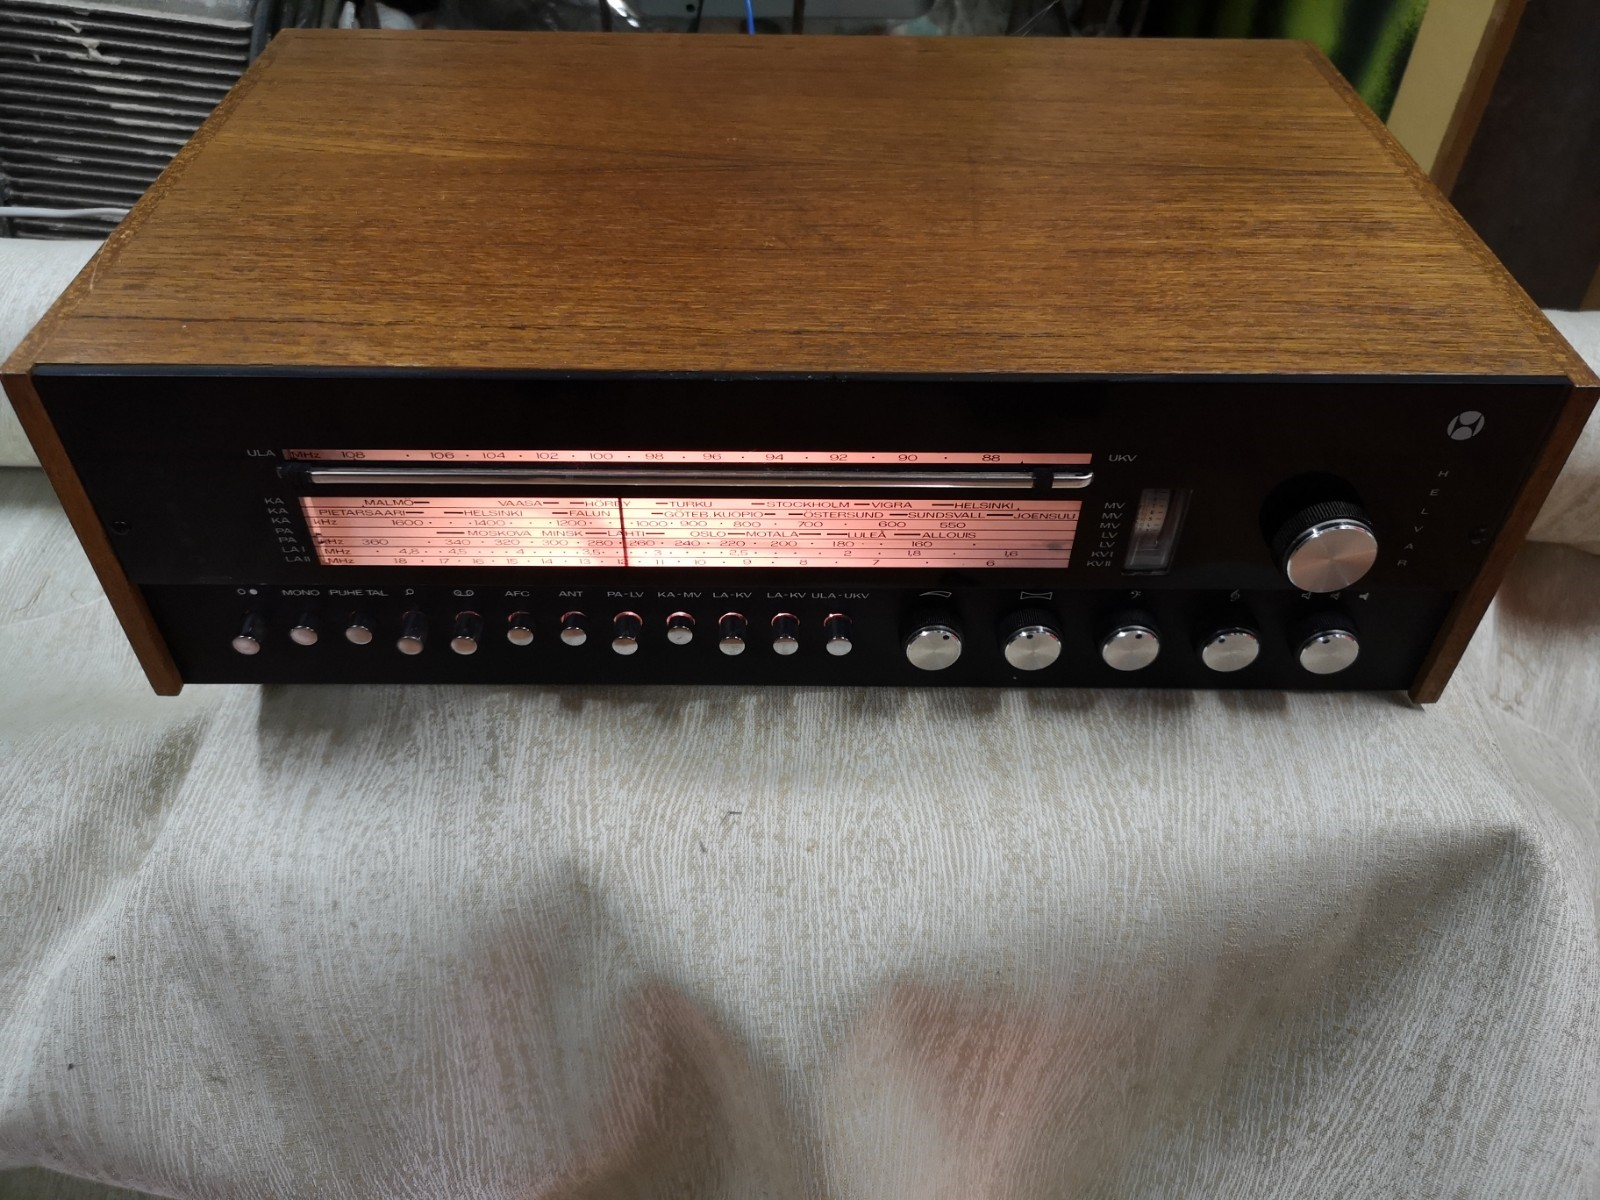 Helvar stereomatic retroradio